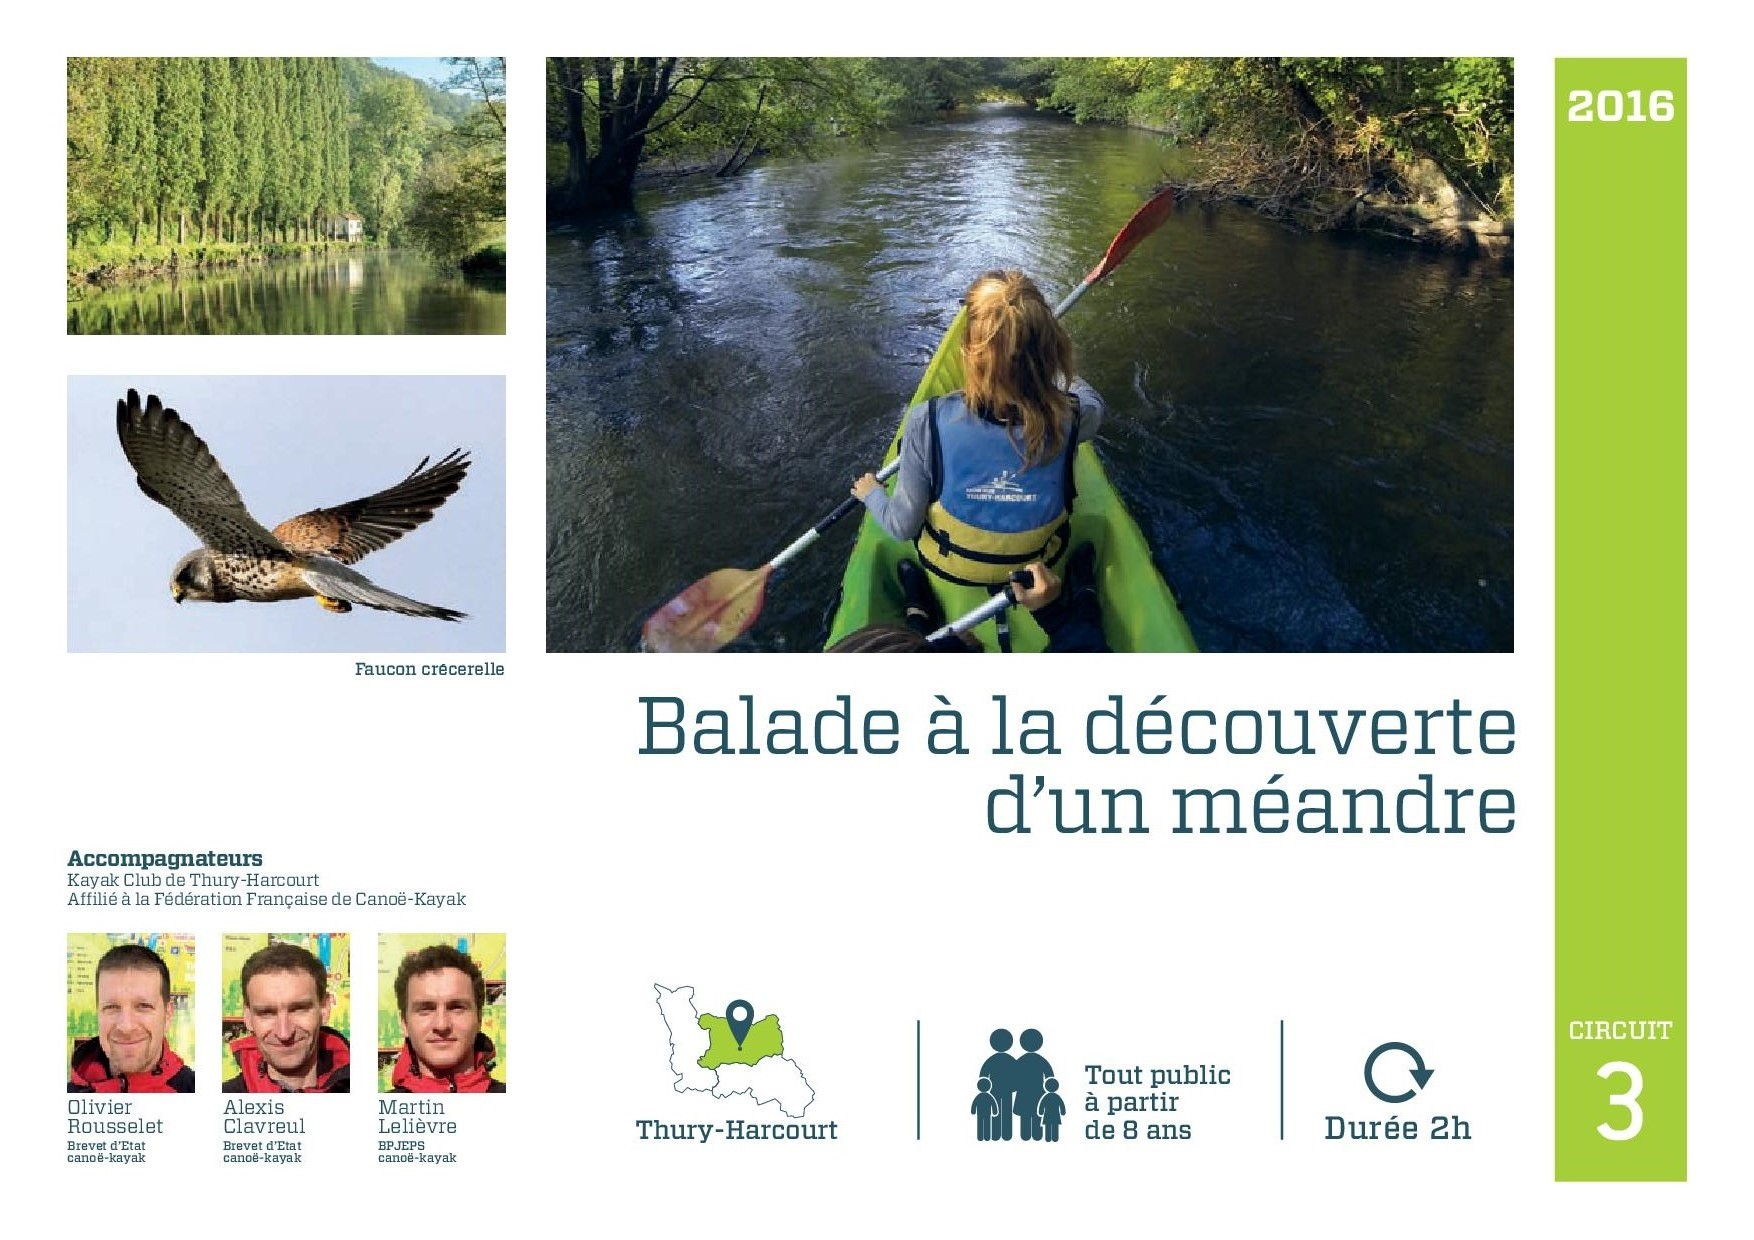 Balade boucle du Hom Suisse Normande Thury canoe kayak riviere(1)